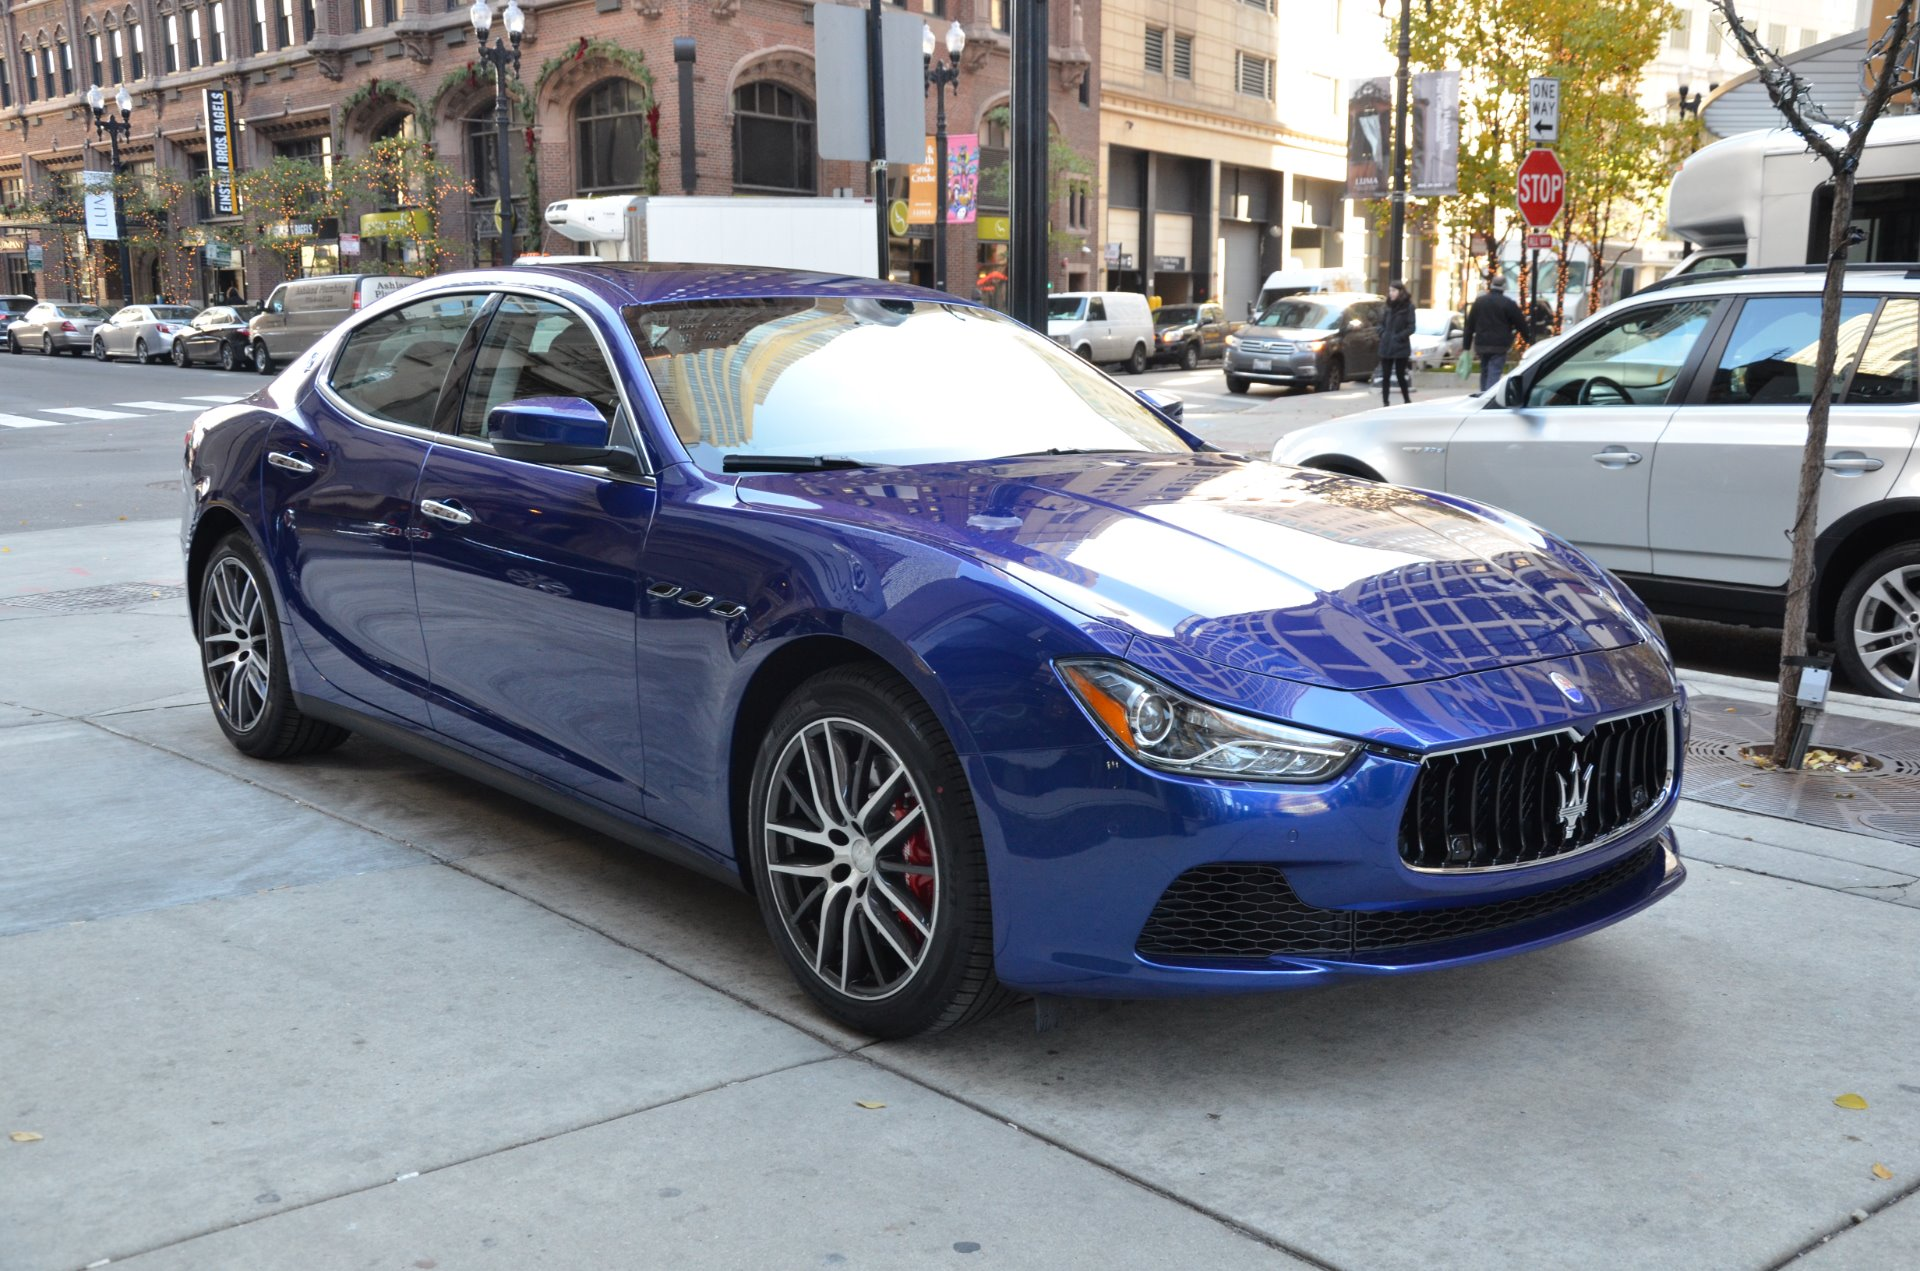 2017 maserati ghibli sq4 s q4 stock m540 for sale near chicago il il maserati dealer. Black Bedroom Furniture Sets. Home Design Ideas